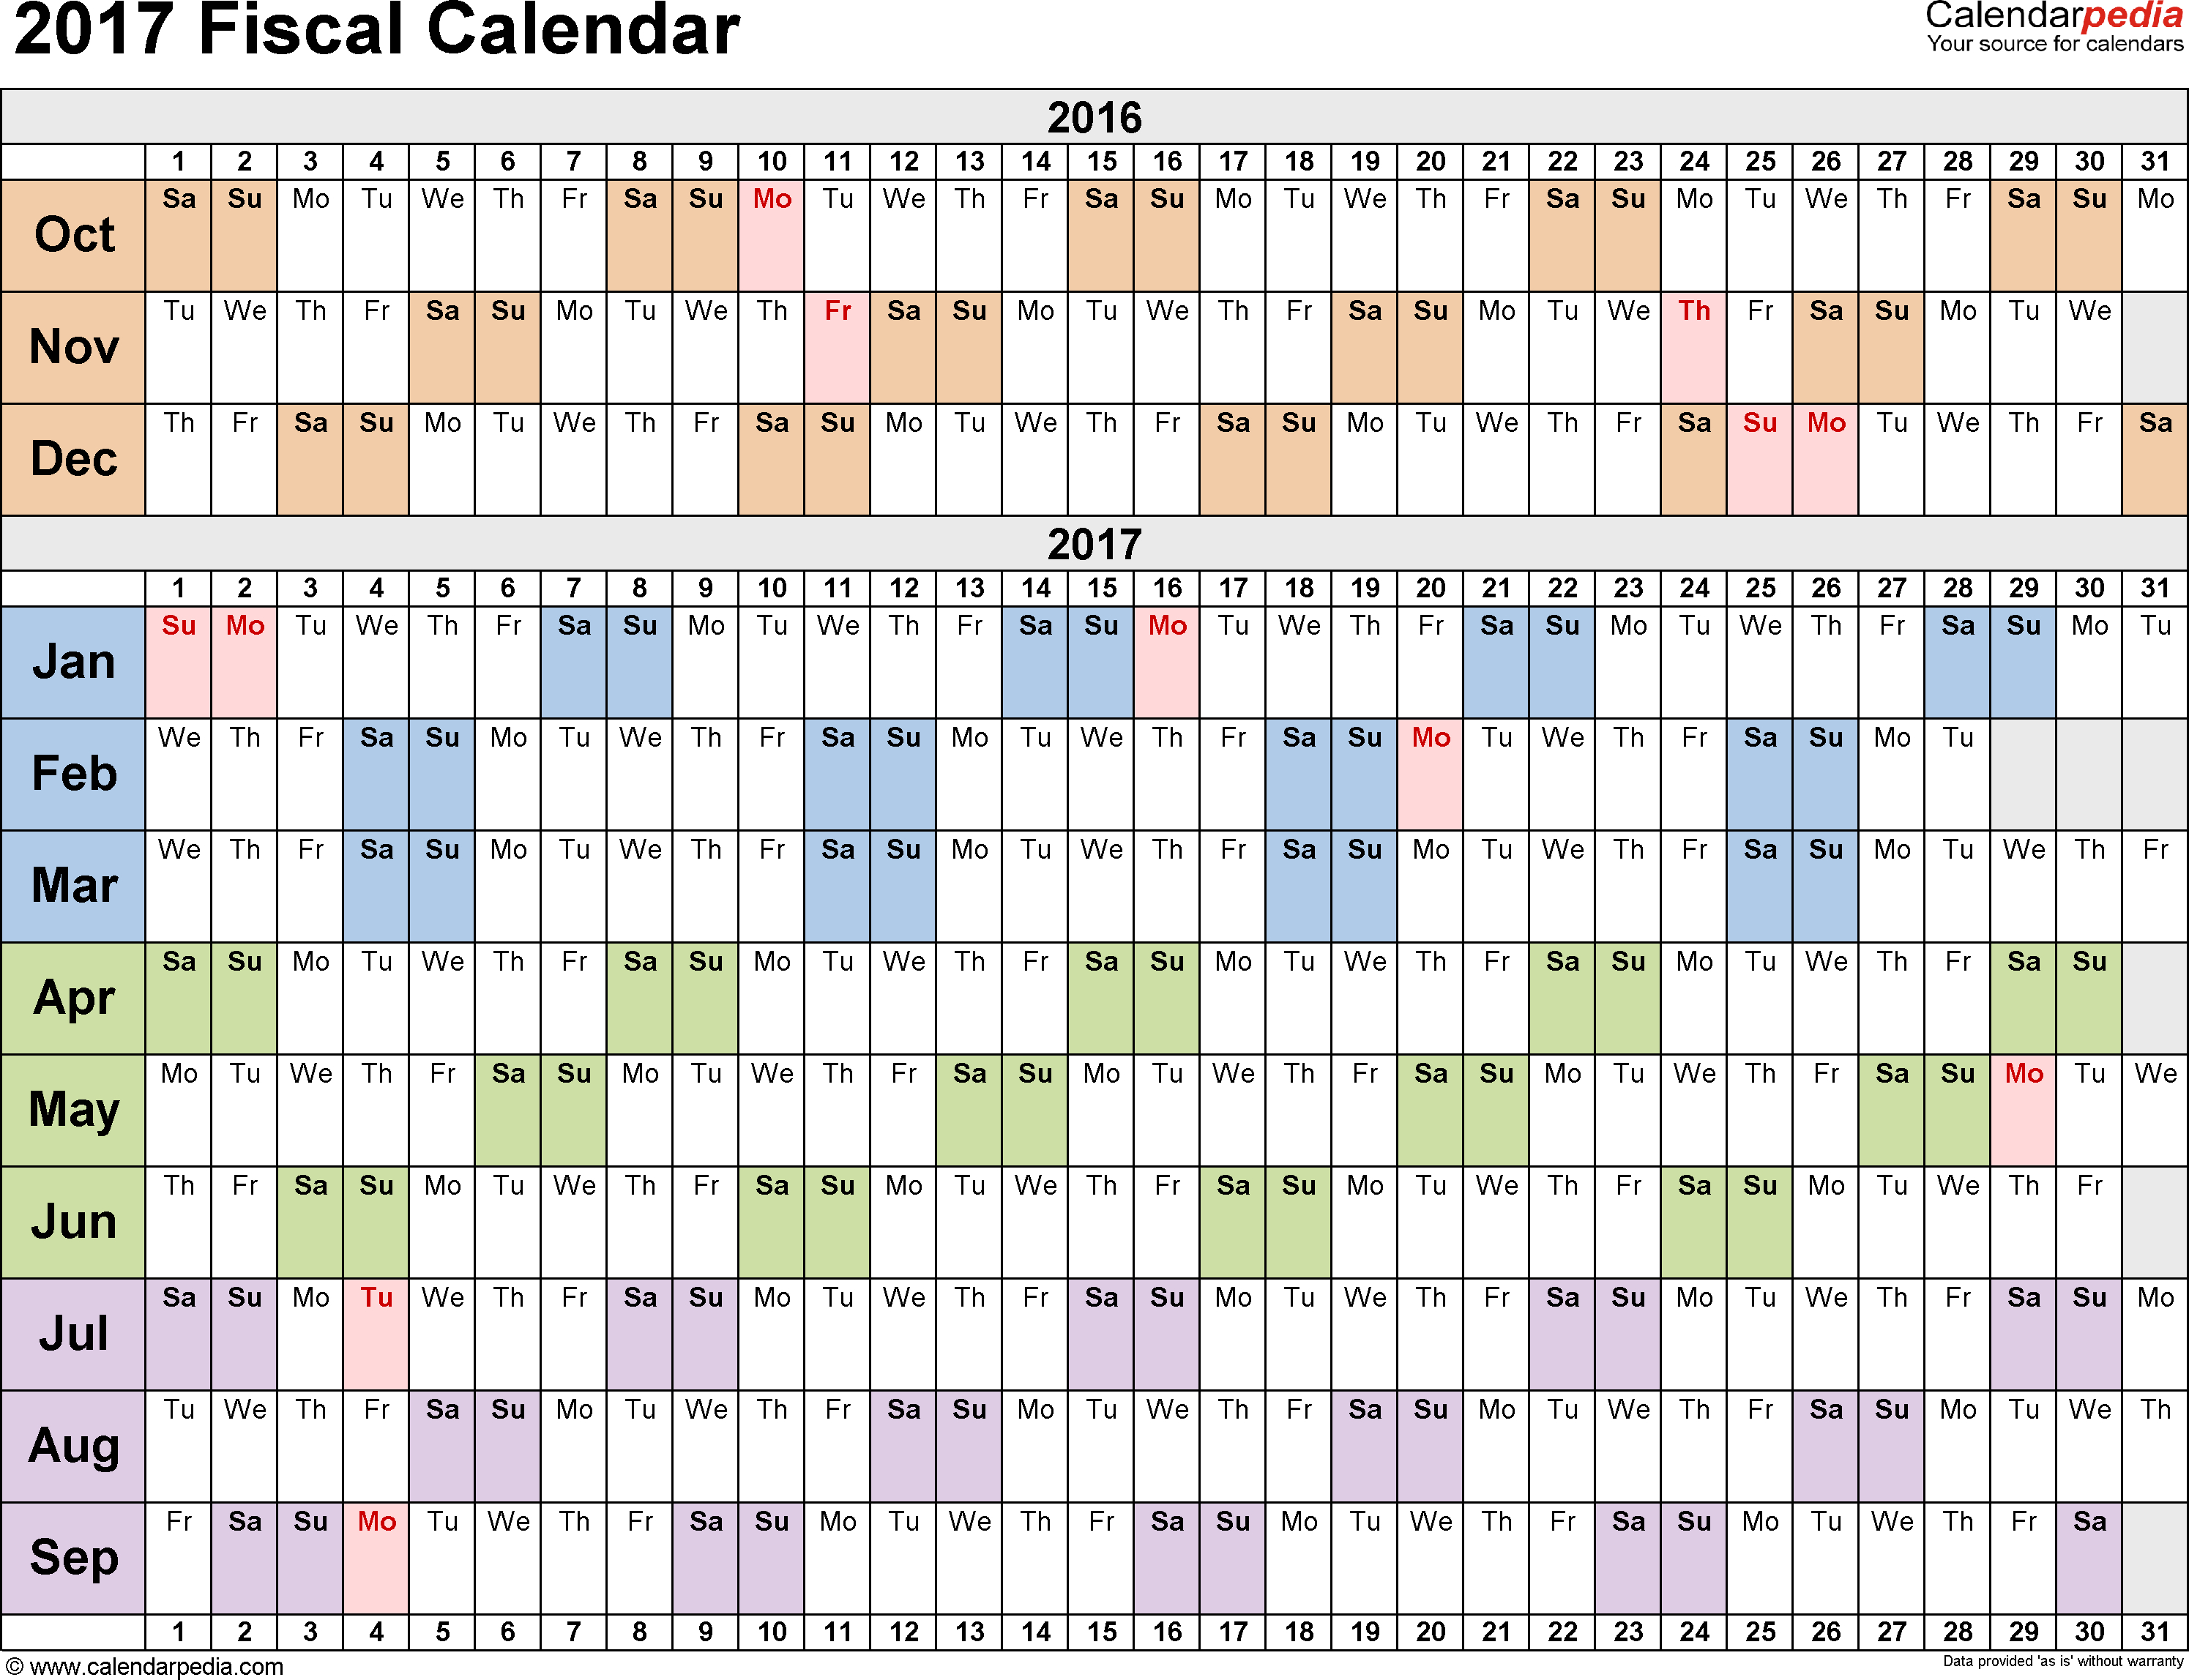 Fiscal Calendars 2017 - Free Printable Pdf Templates